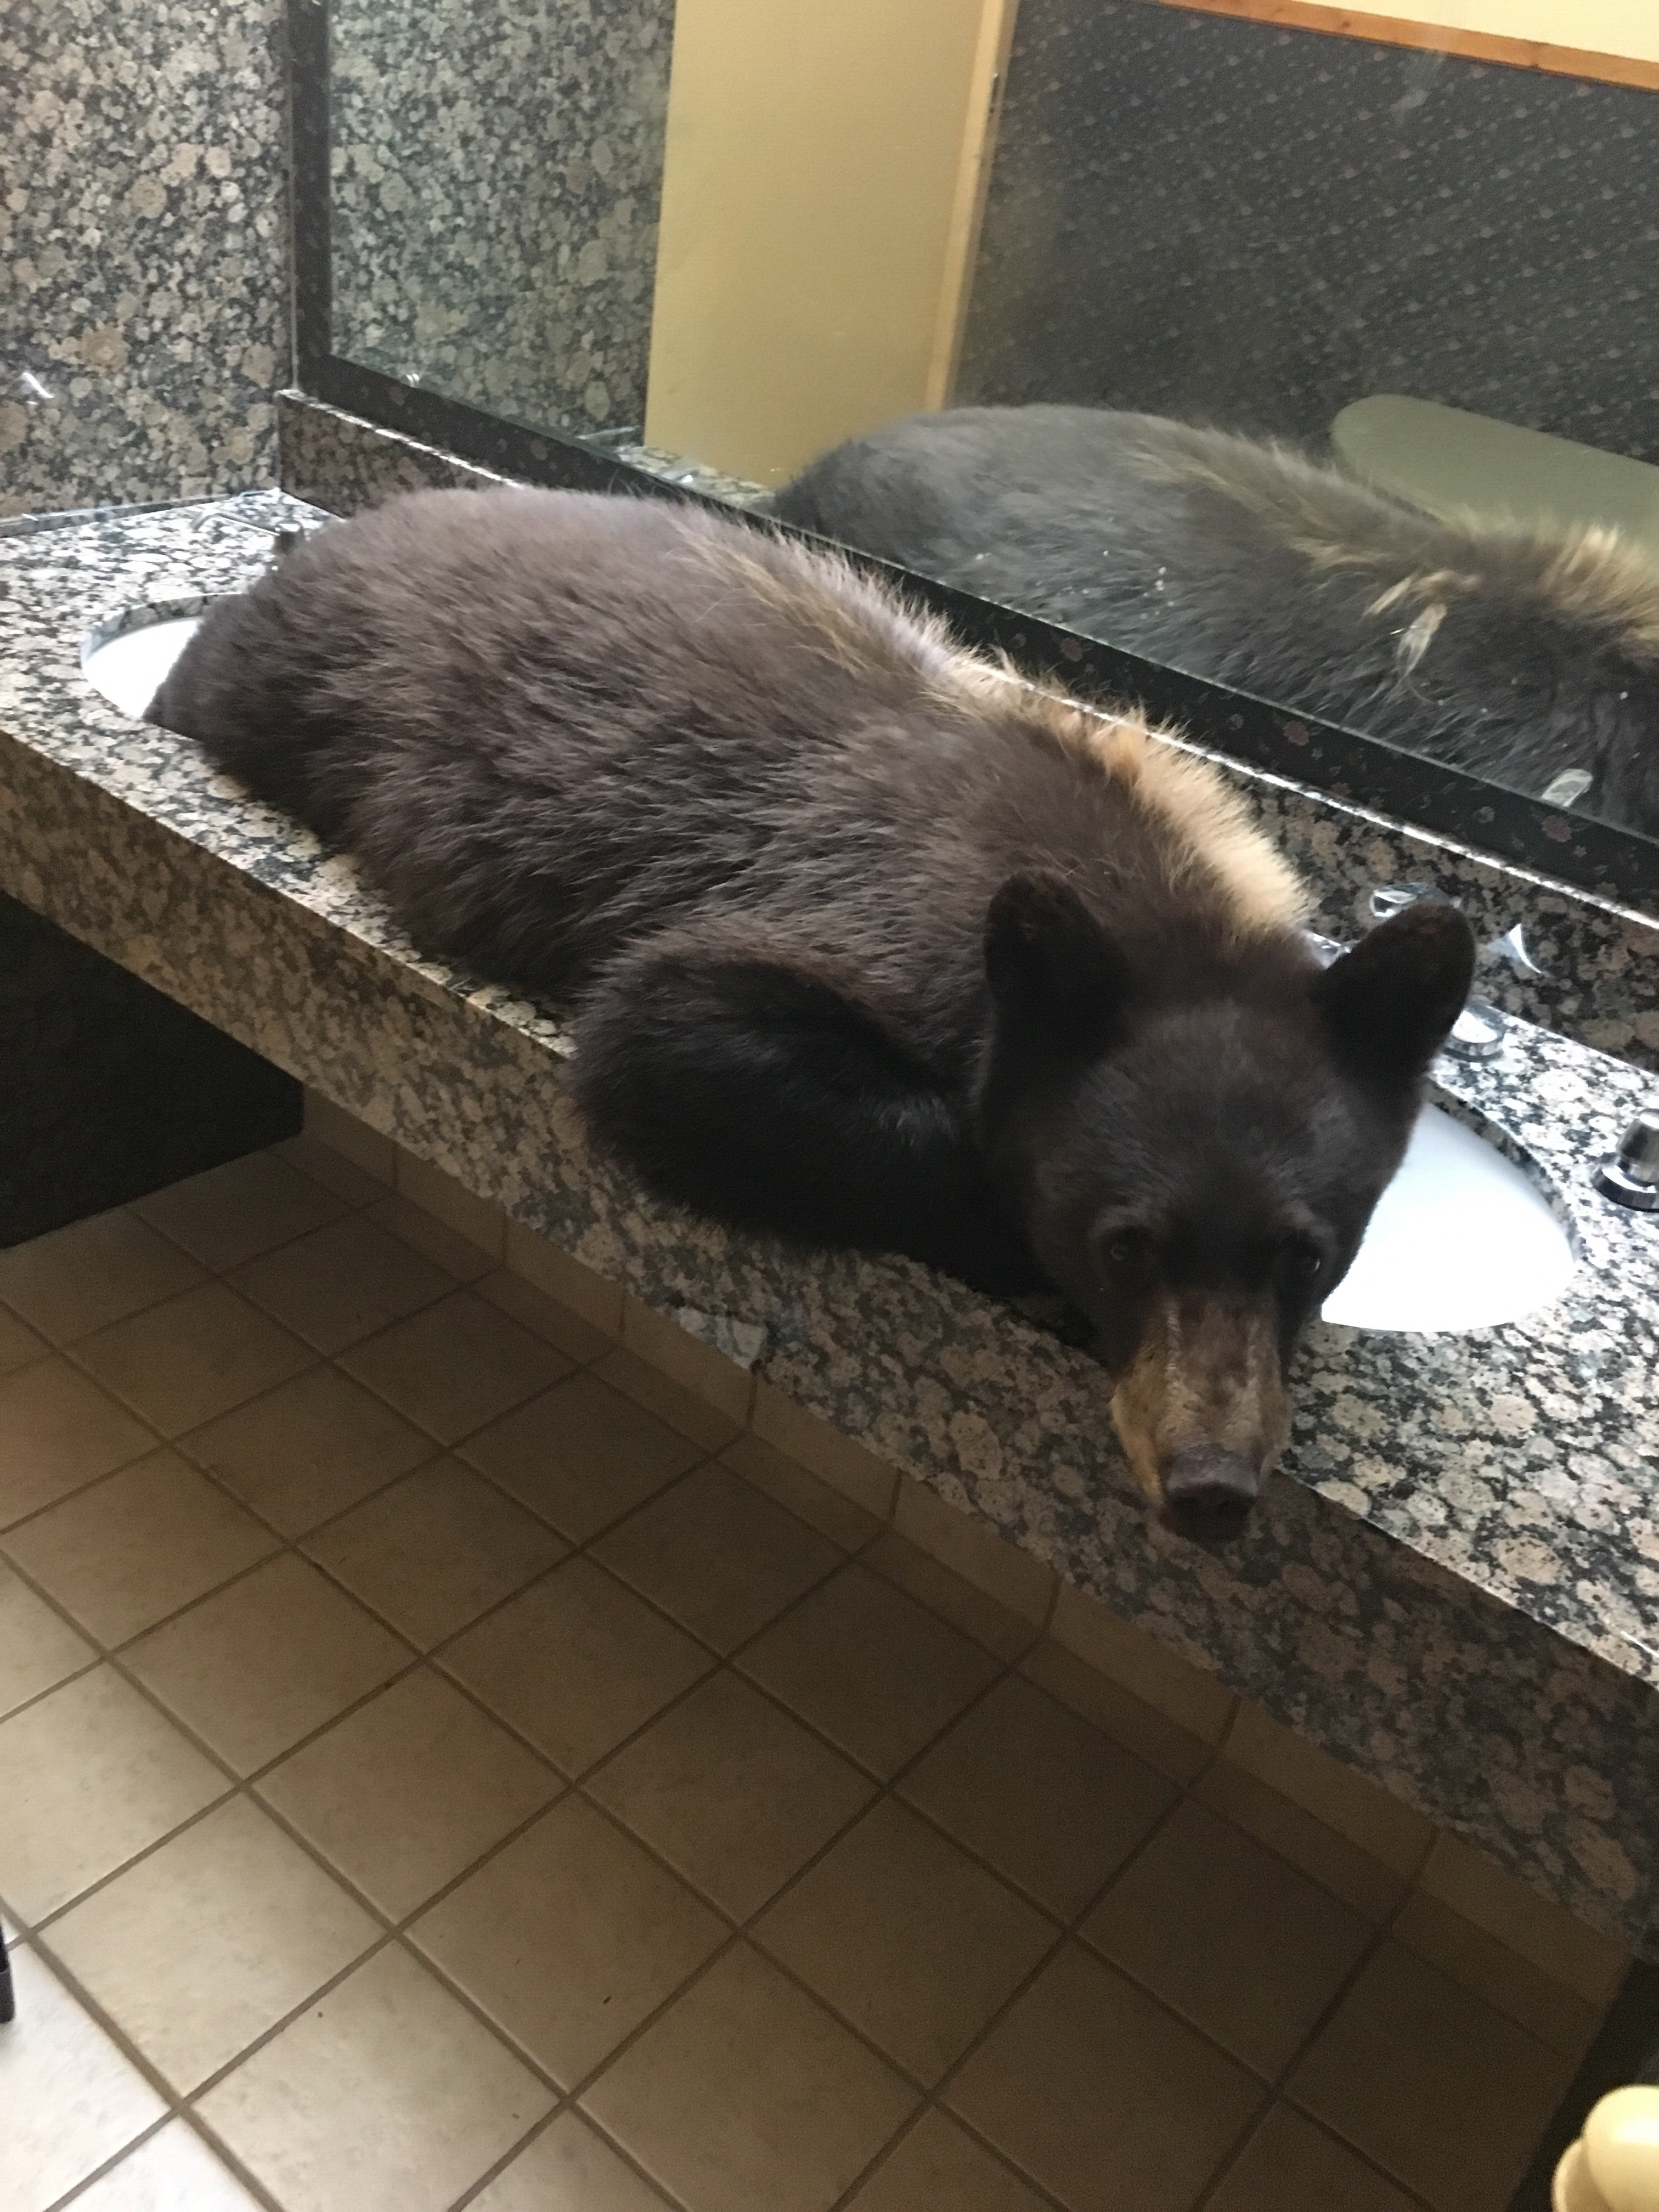 A bear curled up in a restaurant restroom